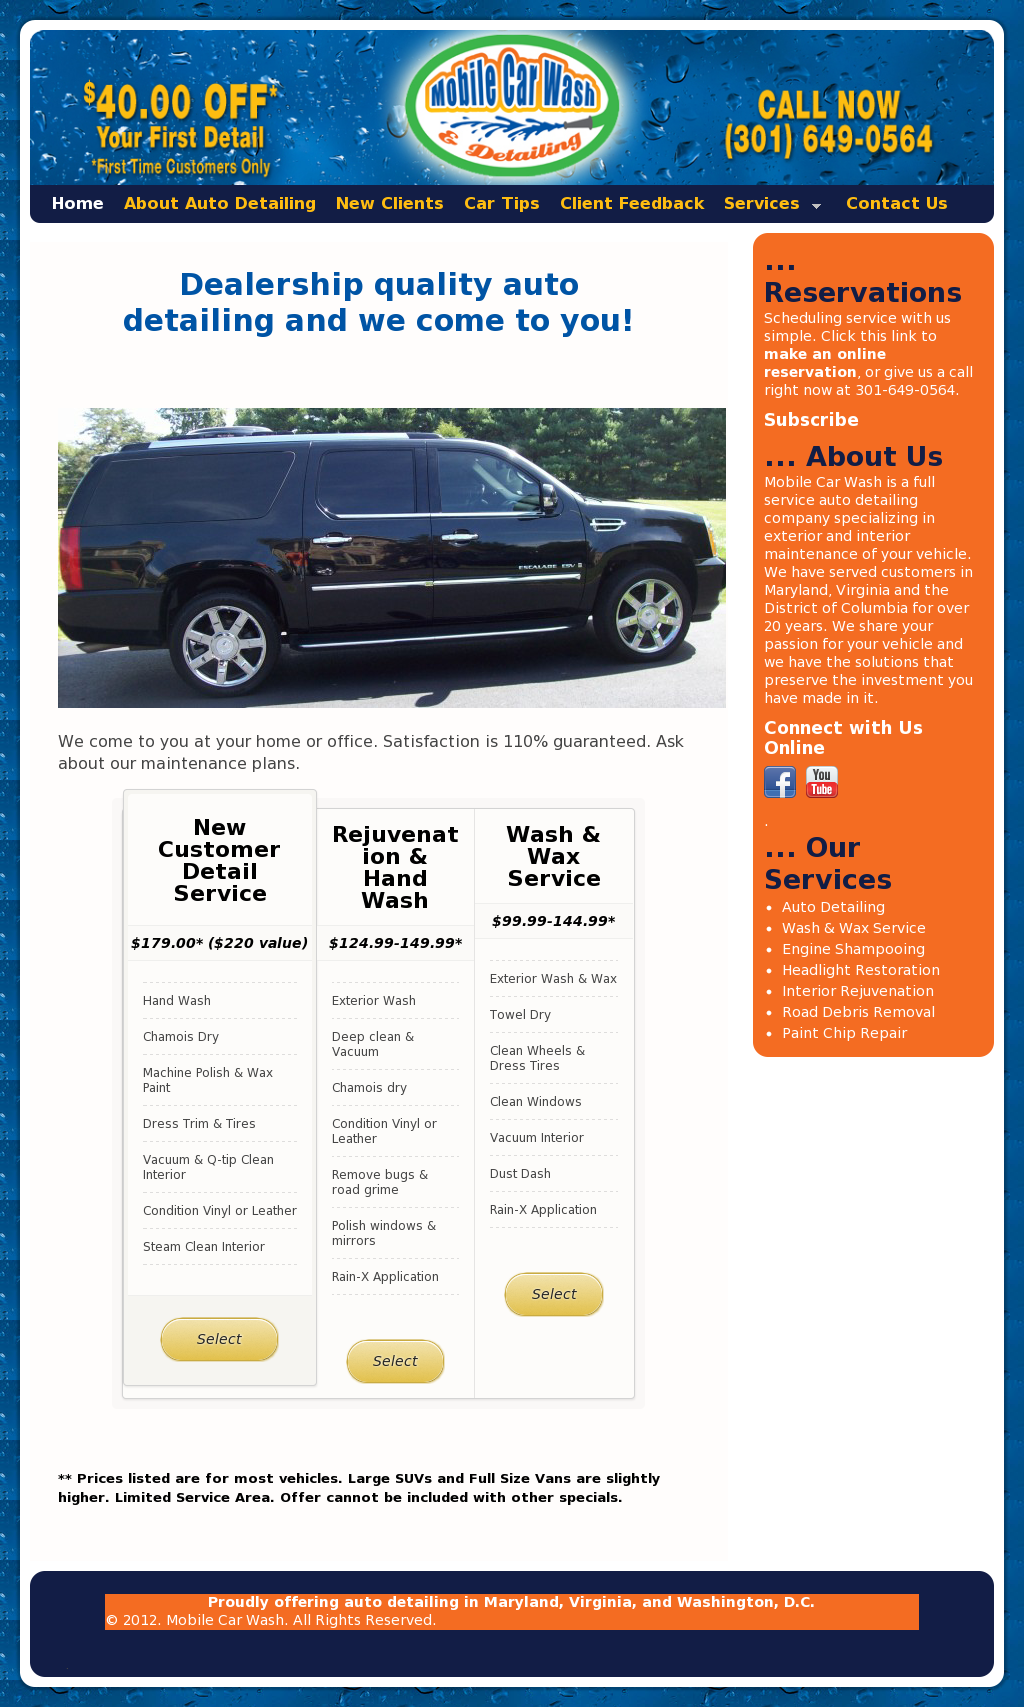 Mobile Car Wash And Detailing Competitors, Revenue and